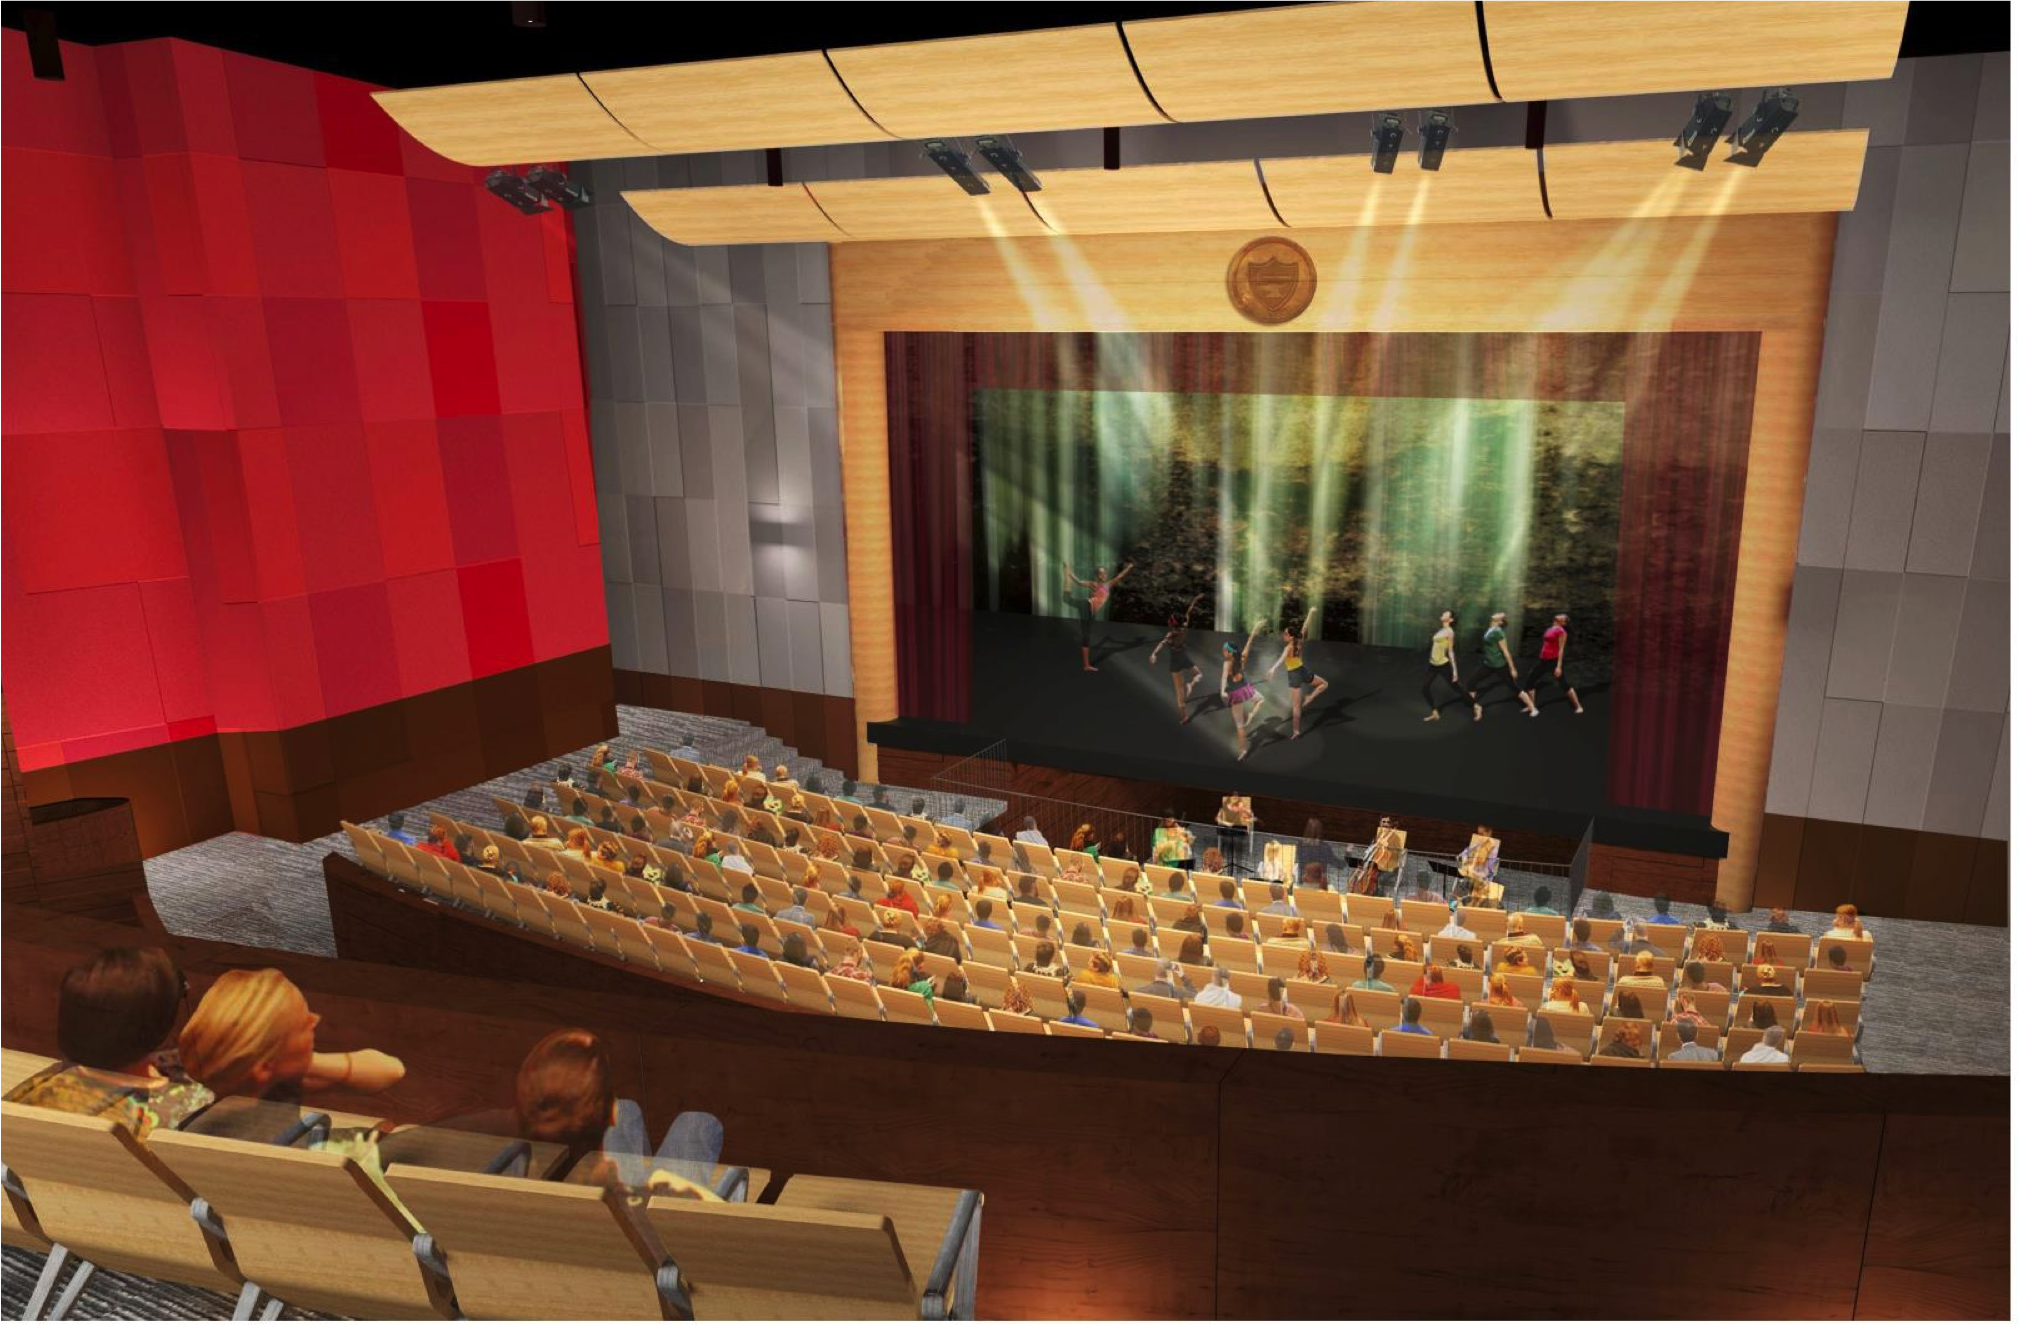 A rendering of the view from the balcony in the Main Stage Theatre